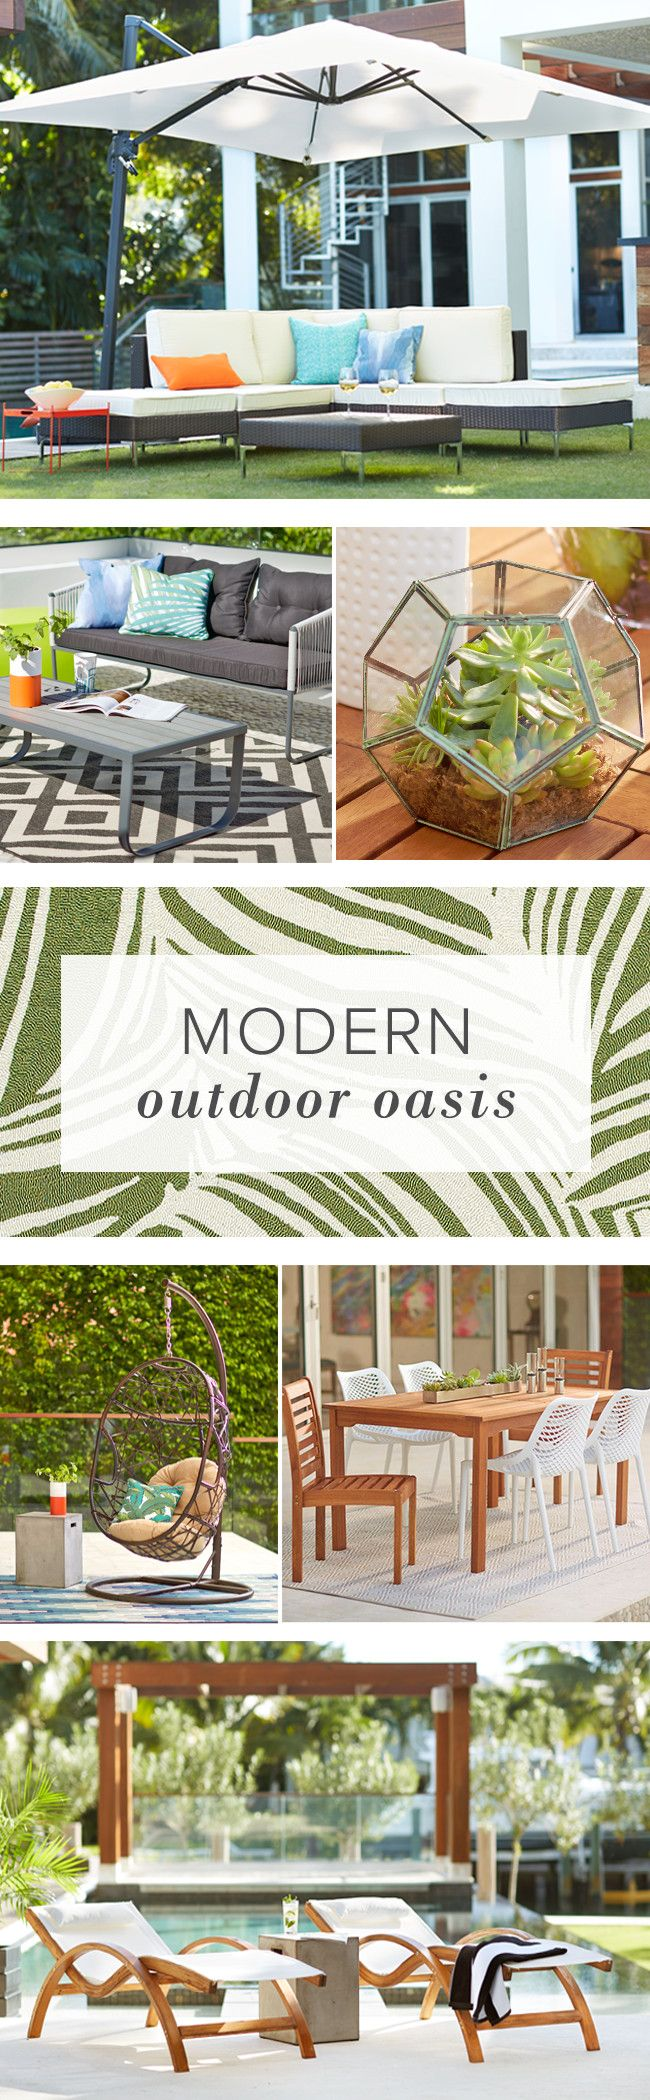 Looking to create a modern outdoor oasis? Find everything you need from patio furniture, fire pits, lounges, and more at AllModern. Plus, FREE SHIPPING on orders over $49.